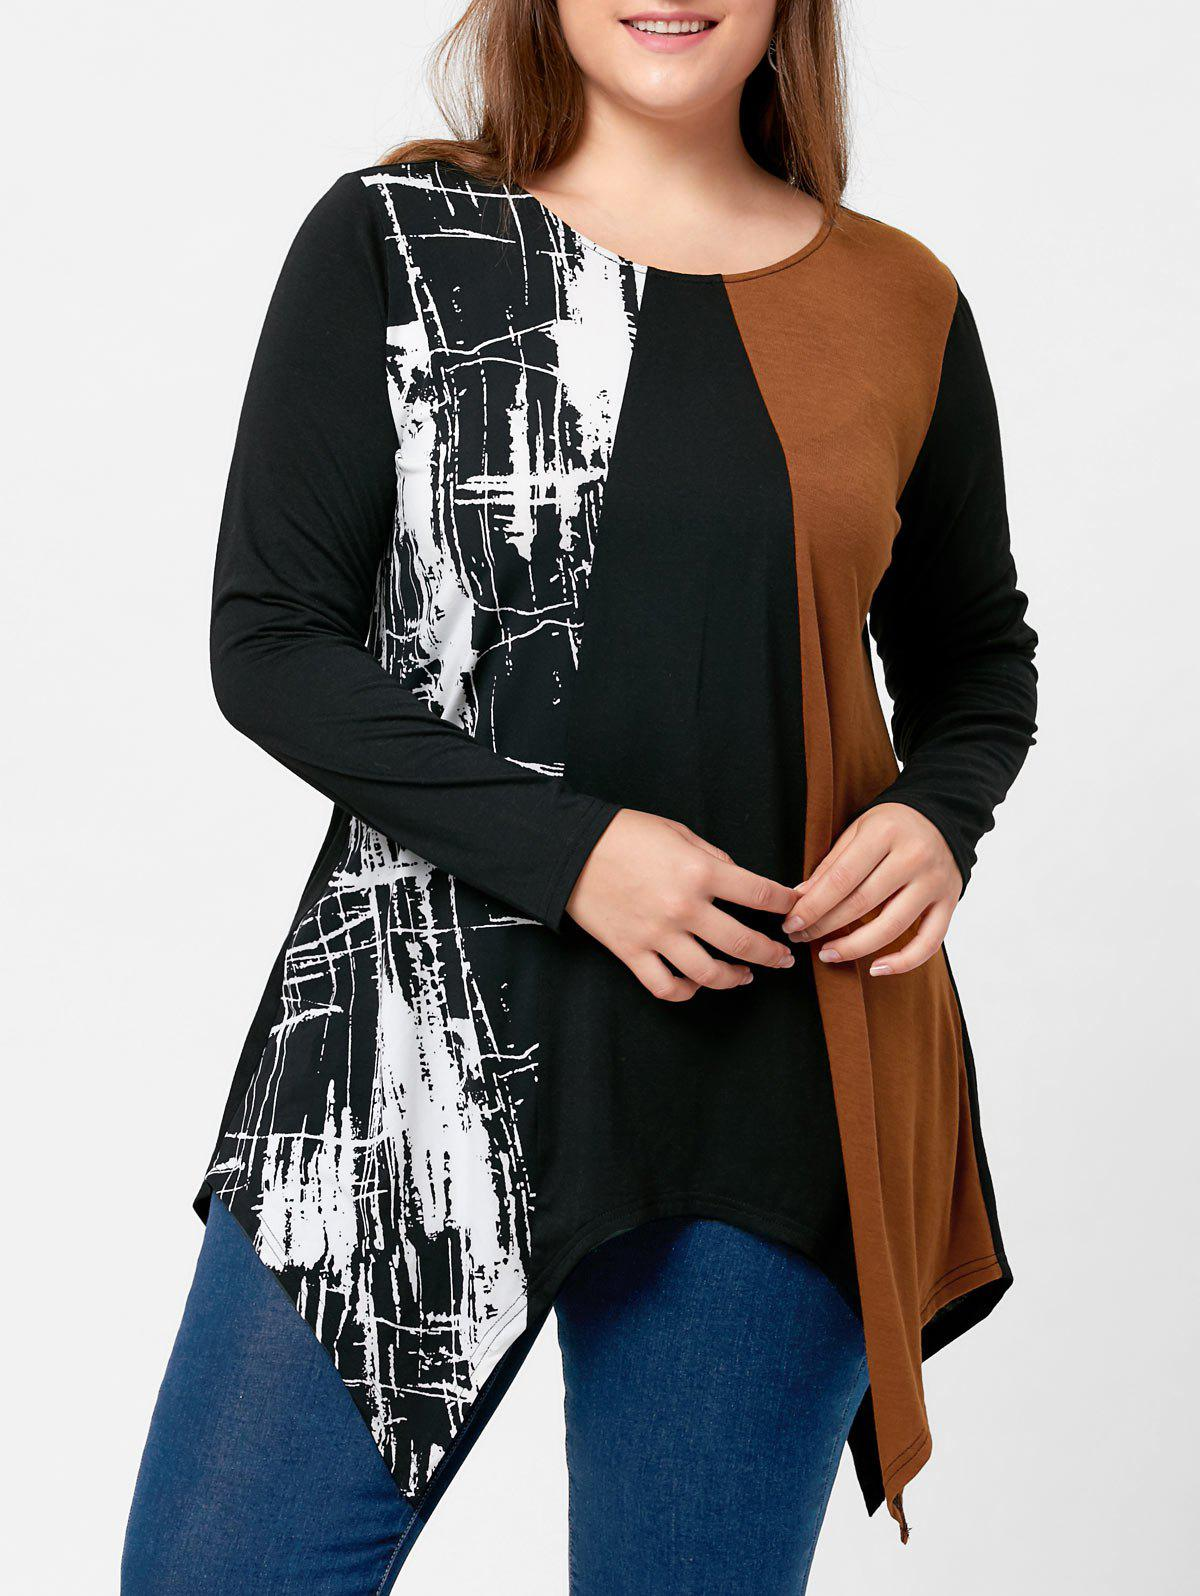 Plus Size Long Sleeve Handkerchief TeeWOMEN<br><br>Size: 5XL; Color: BLACK; Material: Polyester,Spandex; Shirt Length: Long; Sleeve Length: Full; Collar: Round Neck; Style: Casual; Season: Fall,Spring; Pattern Type: Others; Weight: 0.3100kg; Package Contents: 1 x Top;